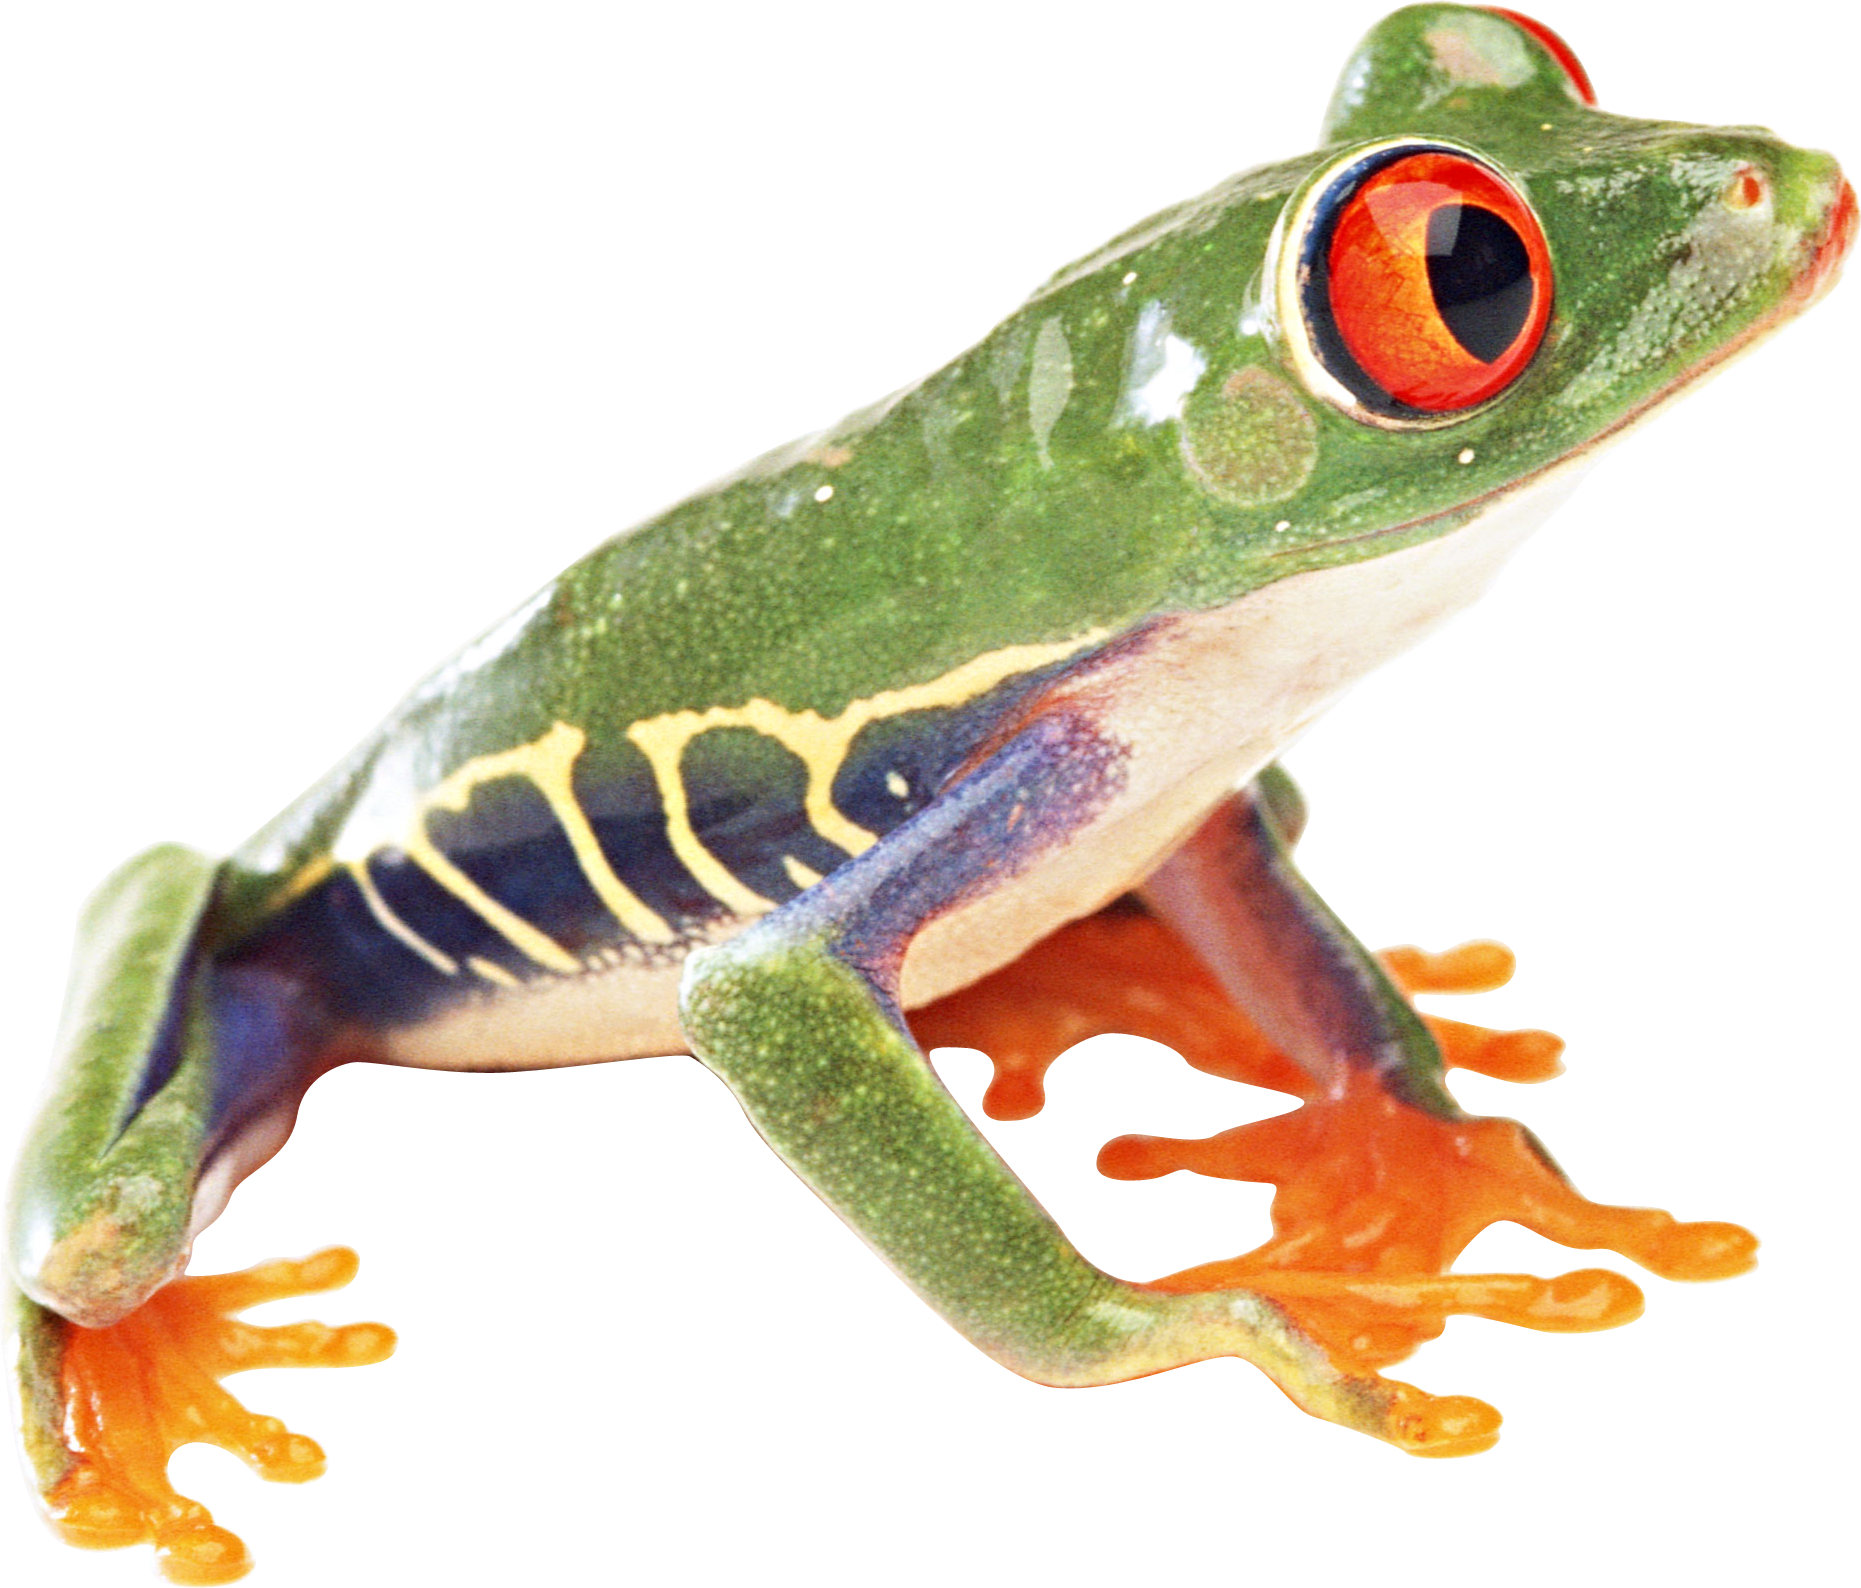 frog PNG image - PNG Frogs Free - Frog PNG HD